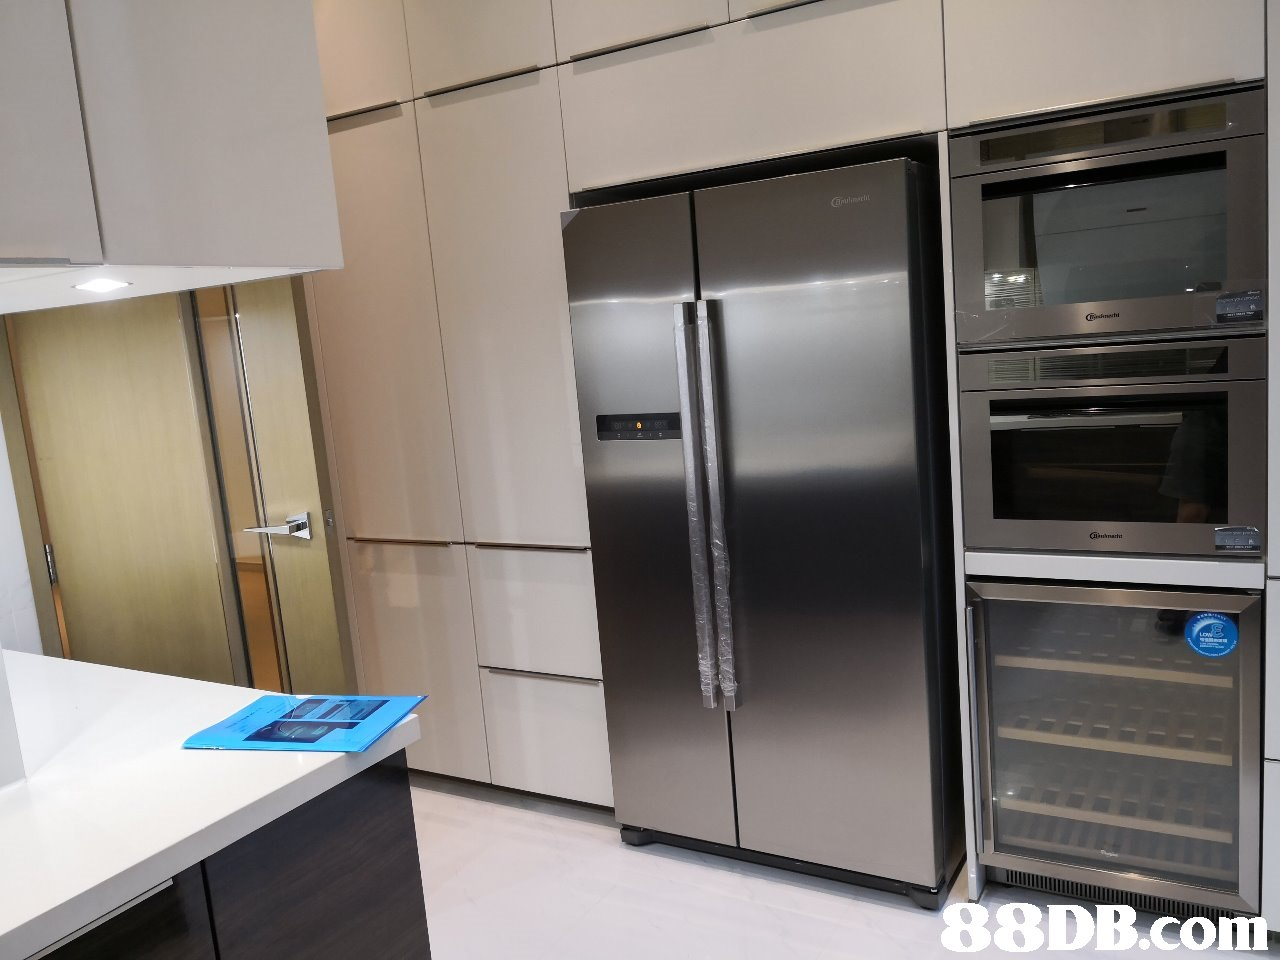 home appliance,major appliance,room,kitchen,refrigerator